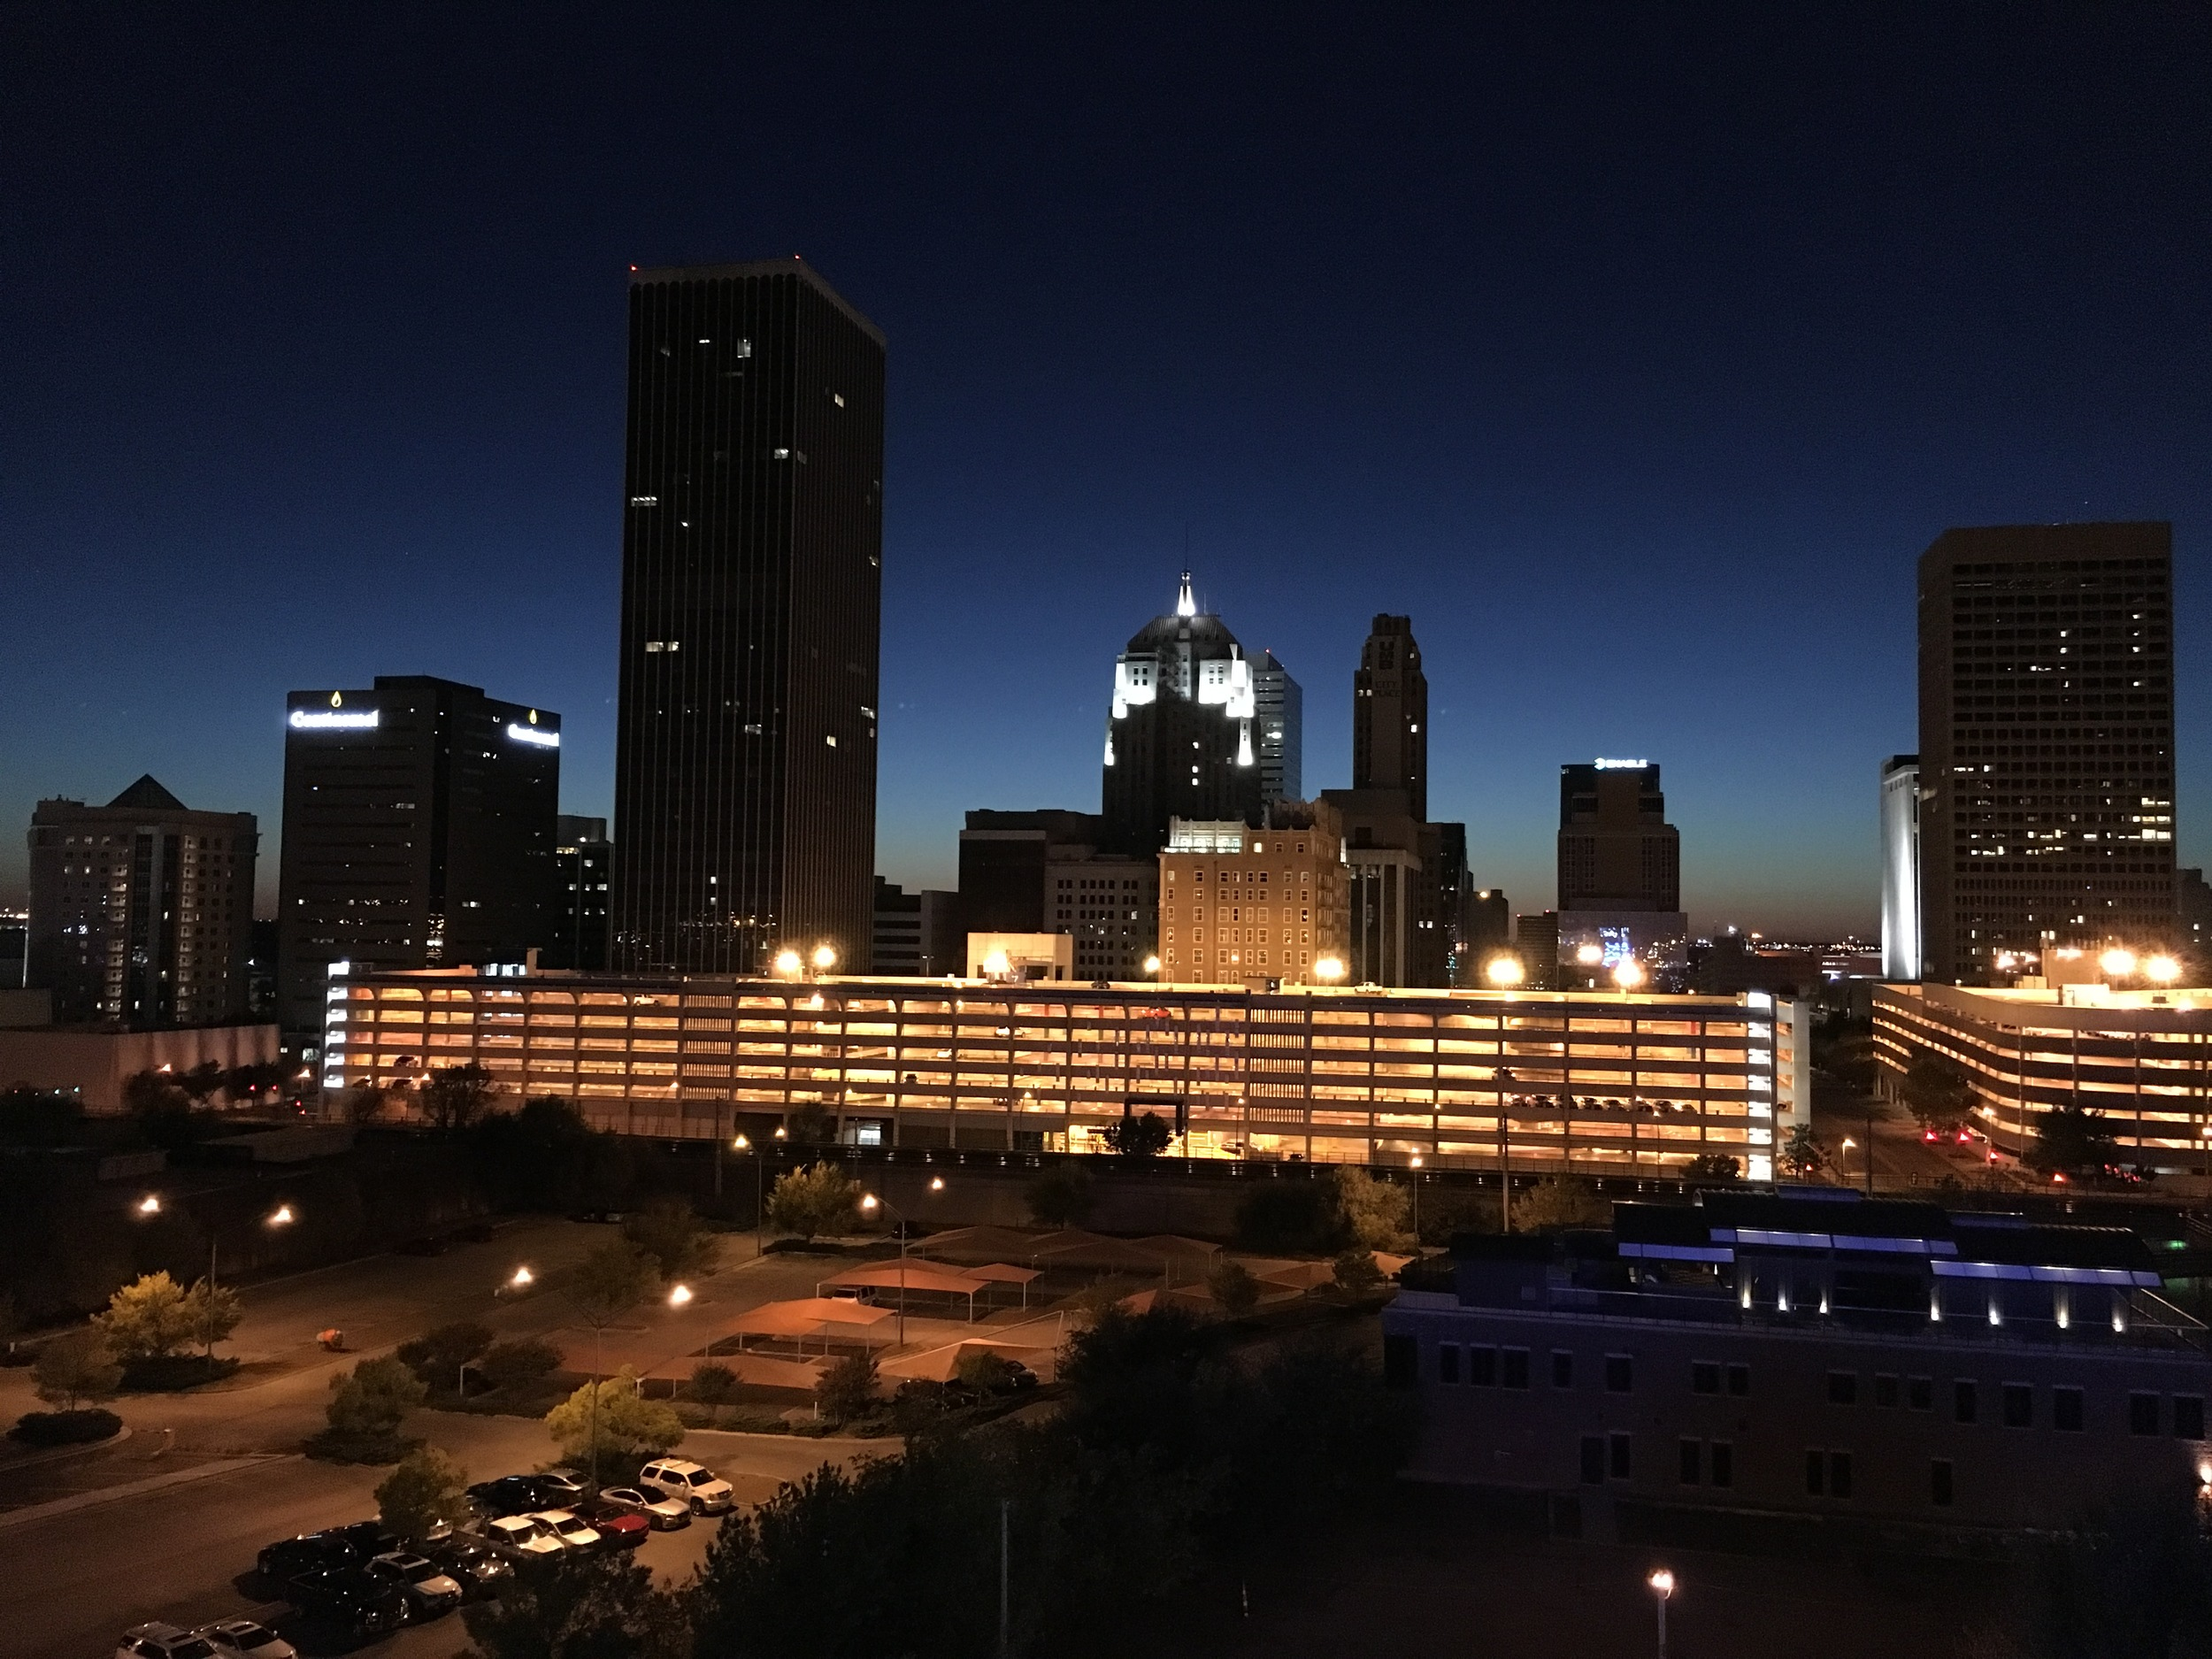 View from the rooftop of Aloft in Oklahoma City